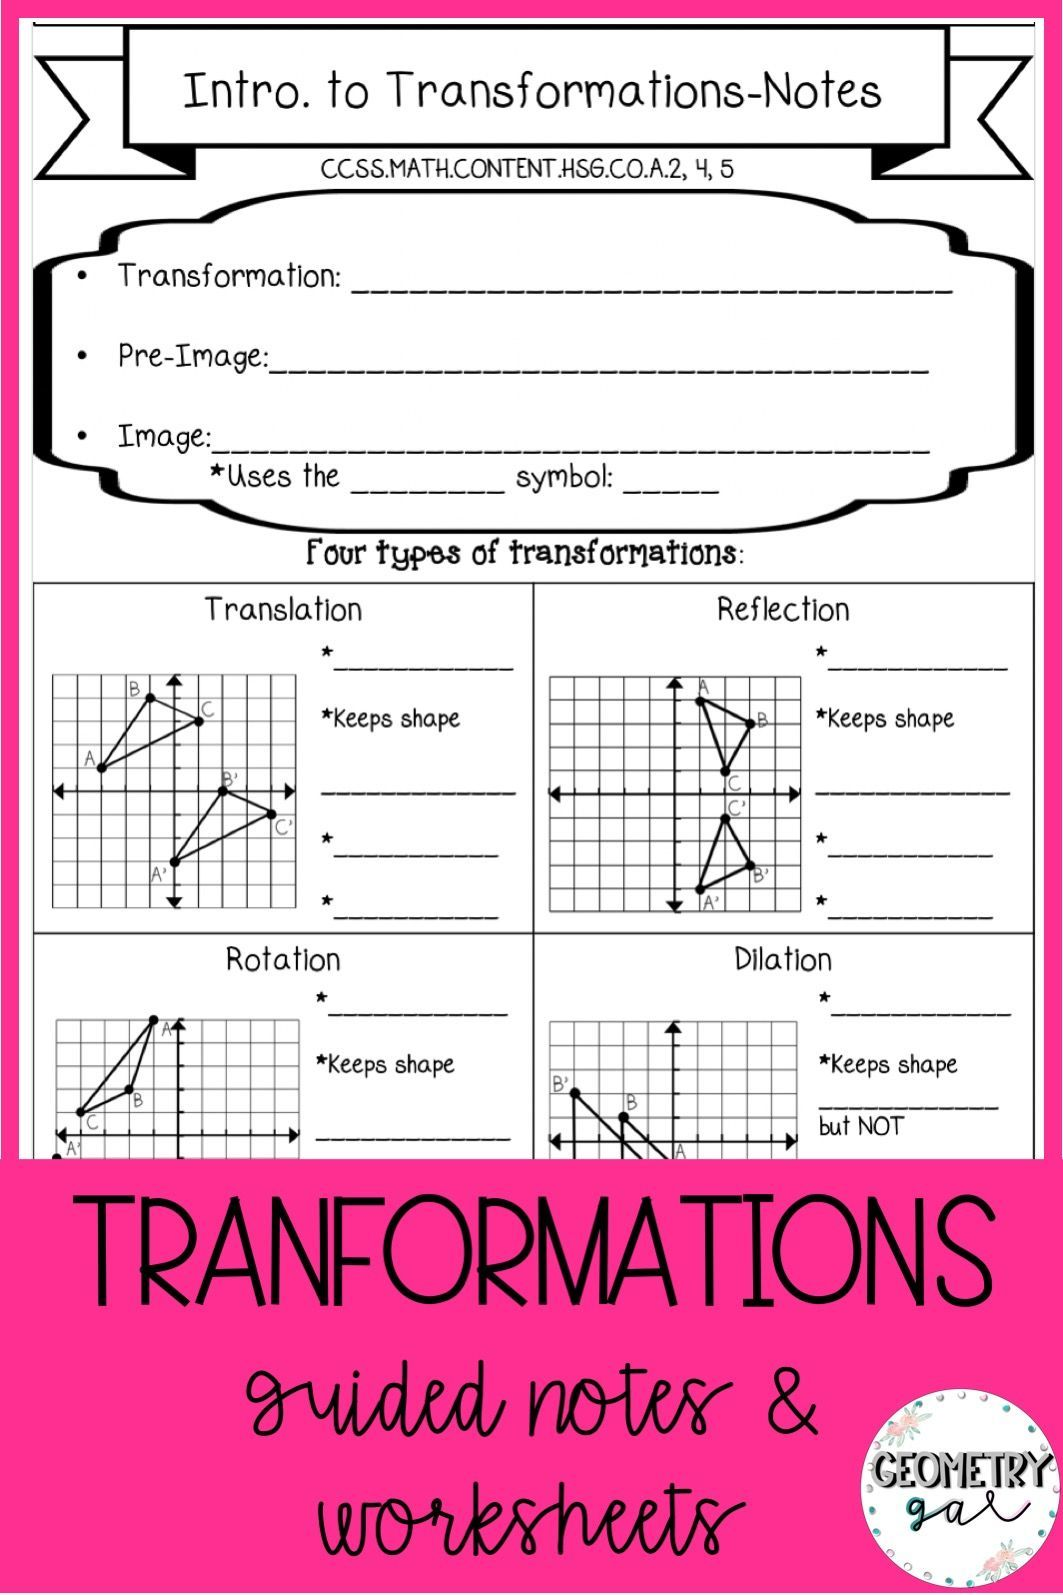 Geometry Transformations Guided Notes And Worksheets Topics Include Translations Reflections Rotations D Geometry Worksheets Guided Notes Translations Math